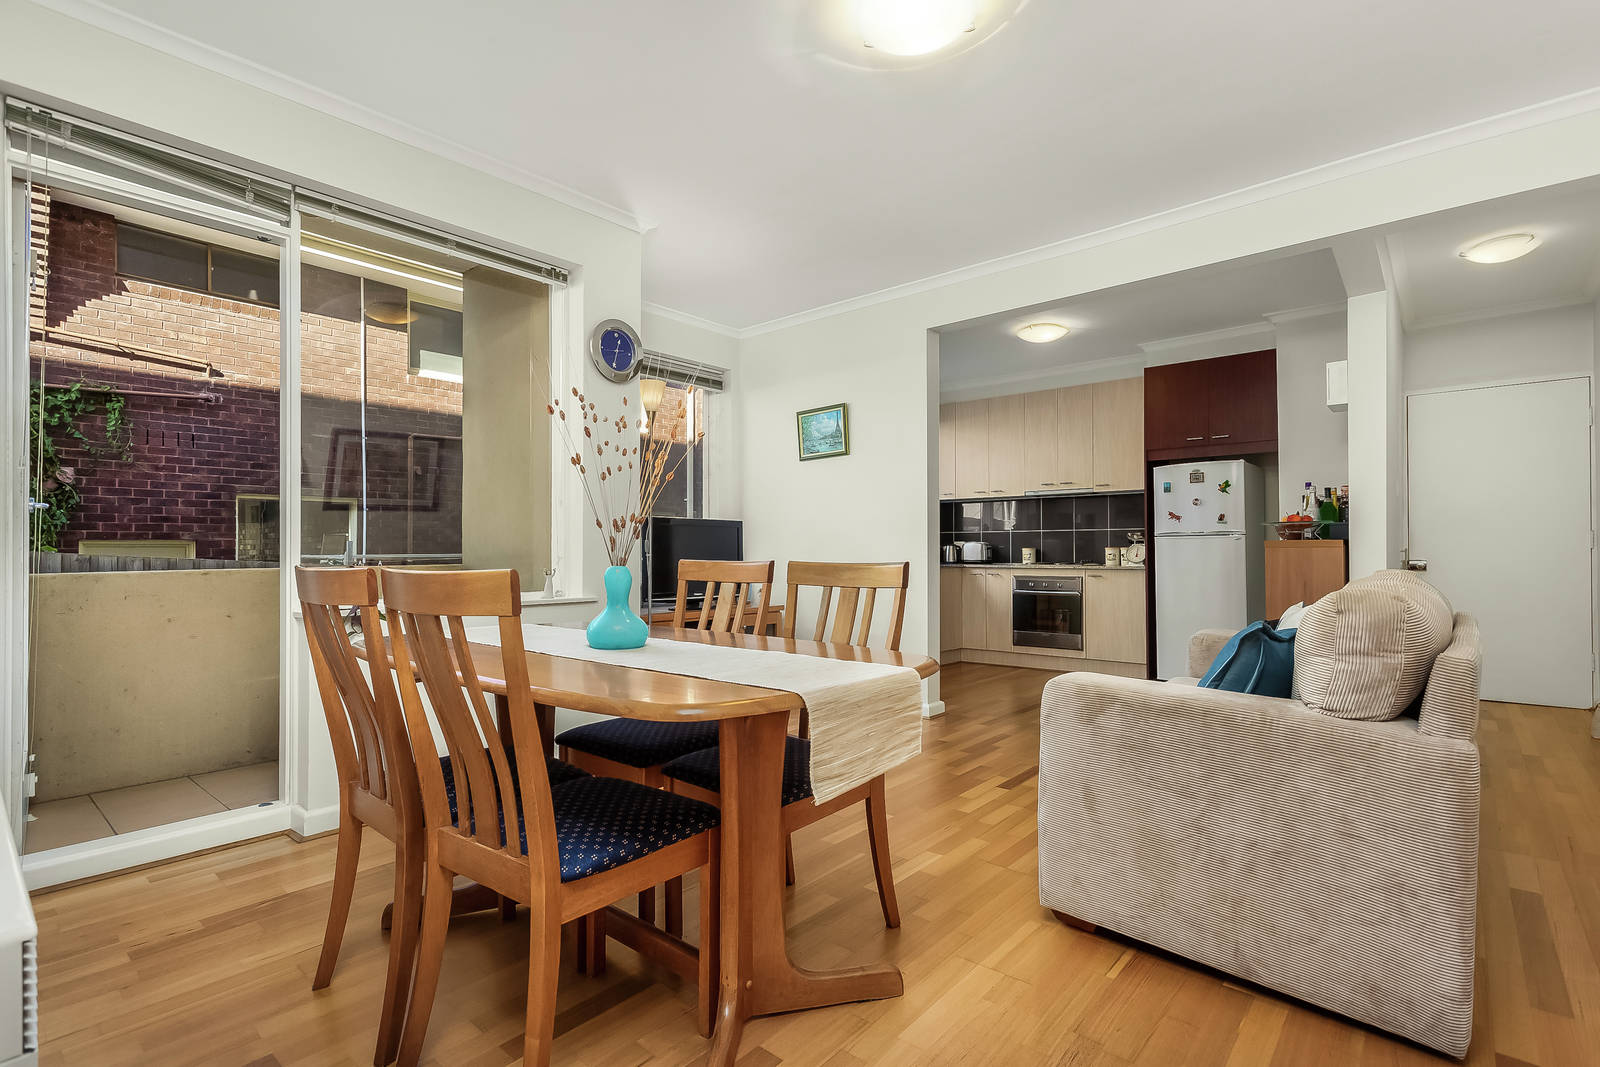 3/37 Flemington Street, Travancore VIC 3032